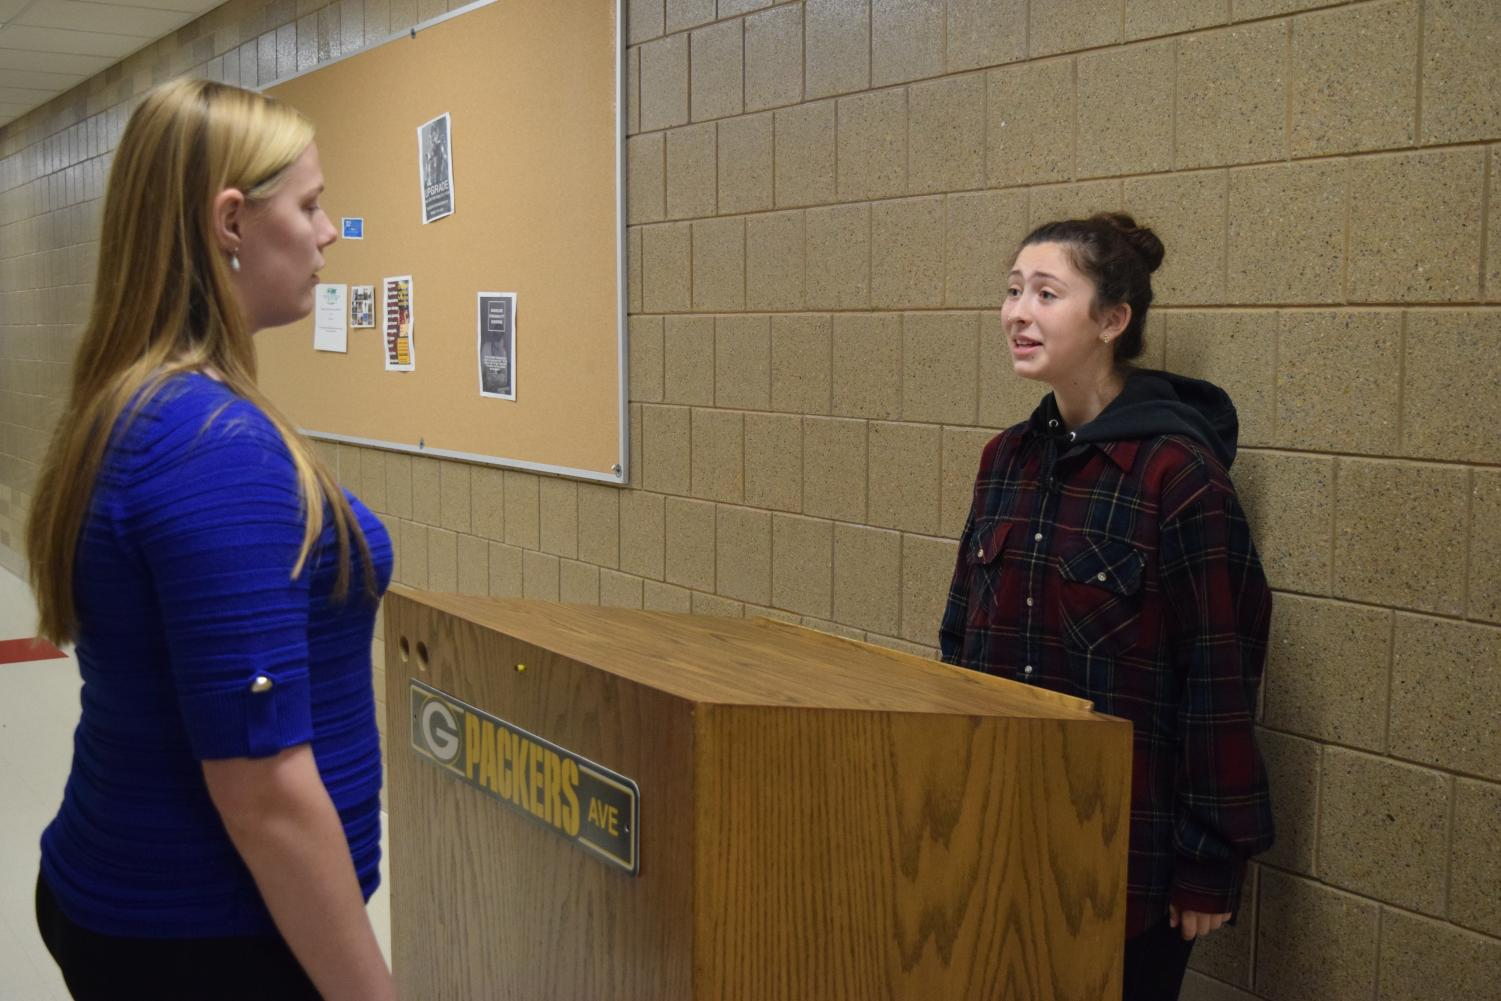 Allison Shore and Izzy Goetze are a power duo for the debate team. Their team has a new assistant coach, Laura Hammond. The girls are seen practicing in school on October 9th.